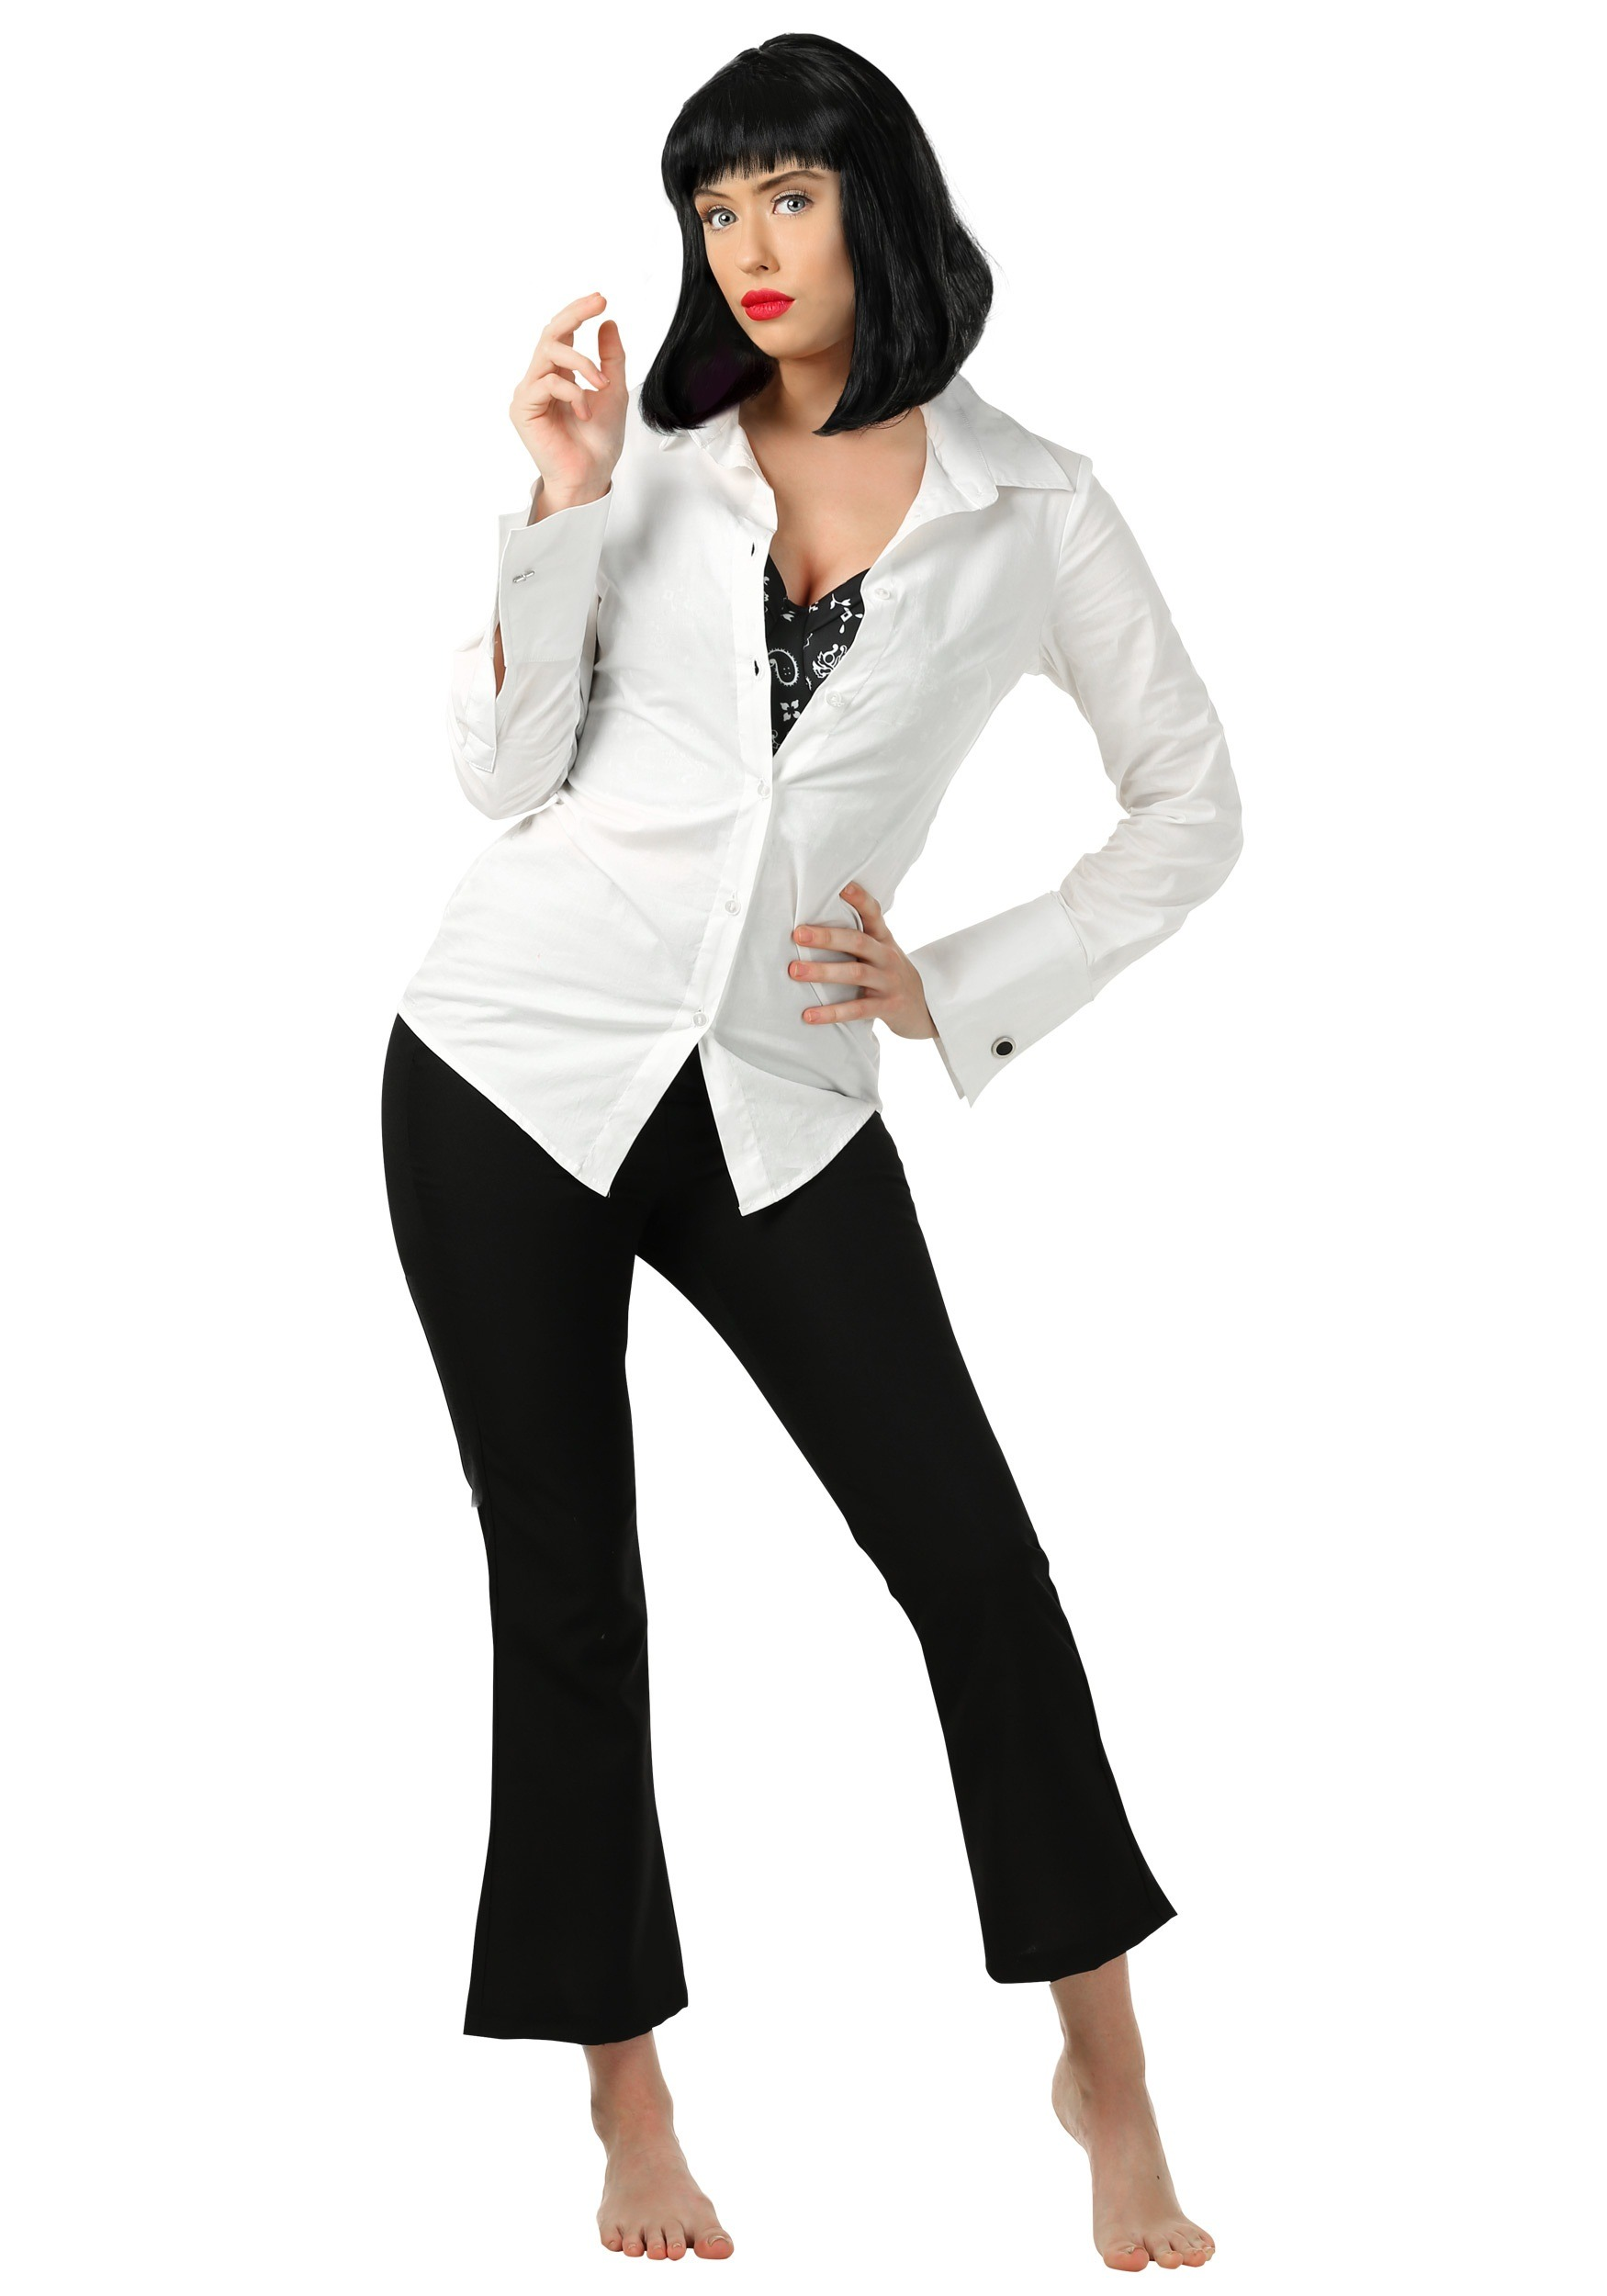 Mia Wallace Pulp Fiction Fancy Dress Costume for Women